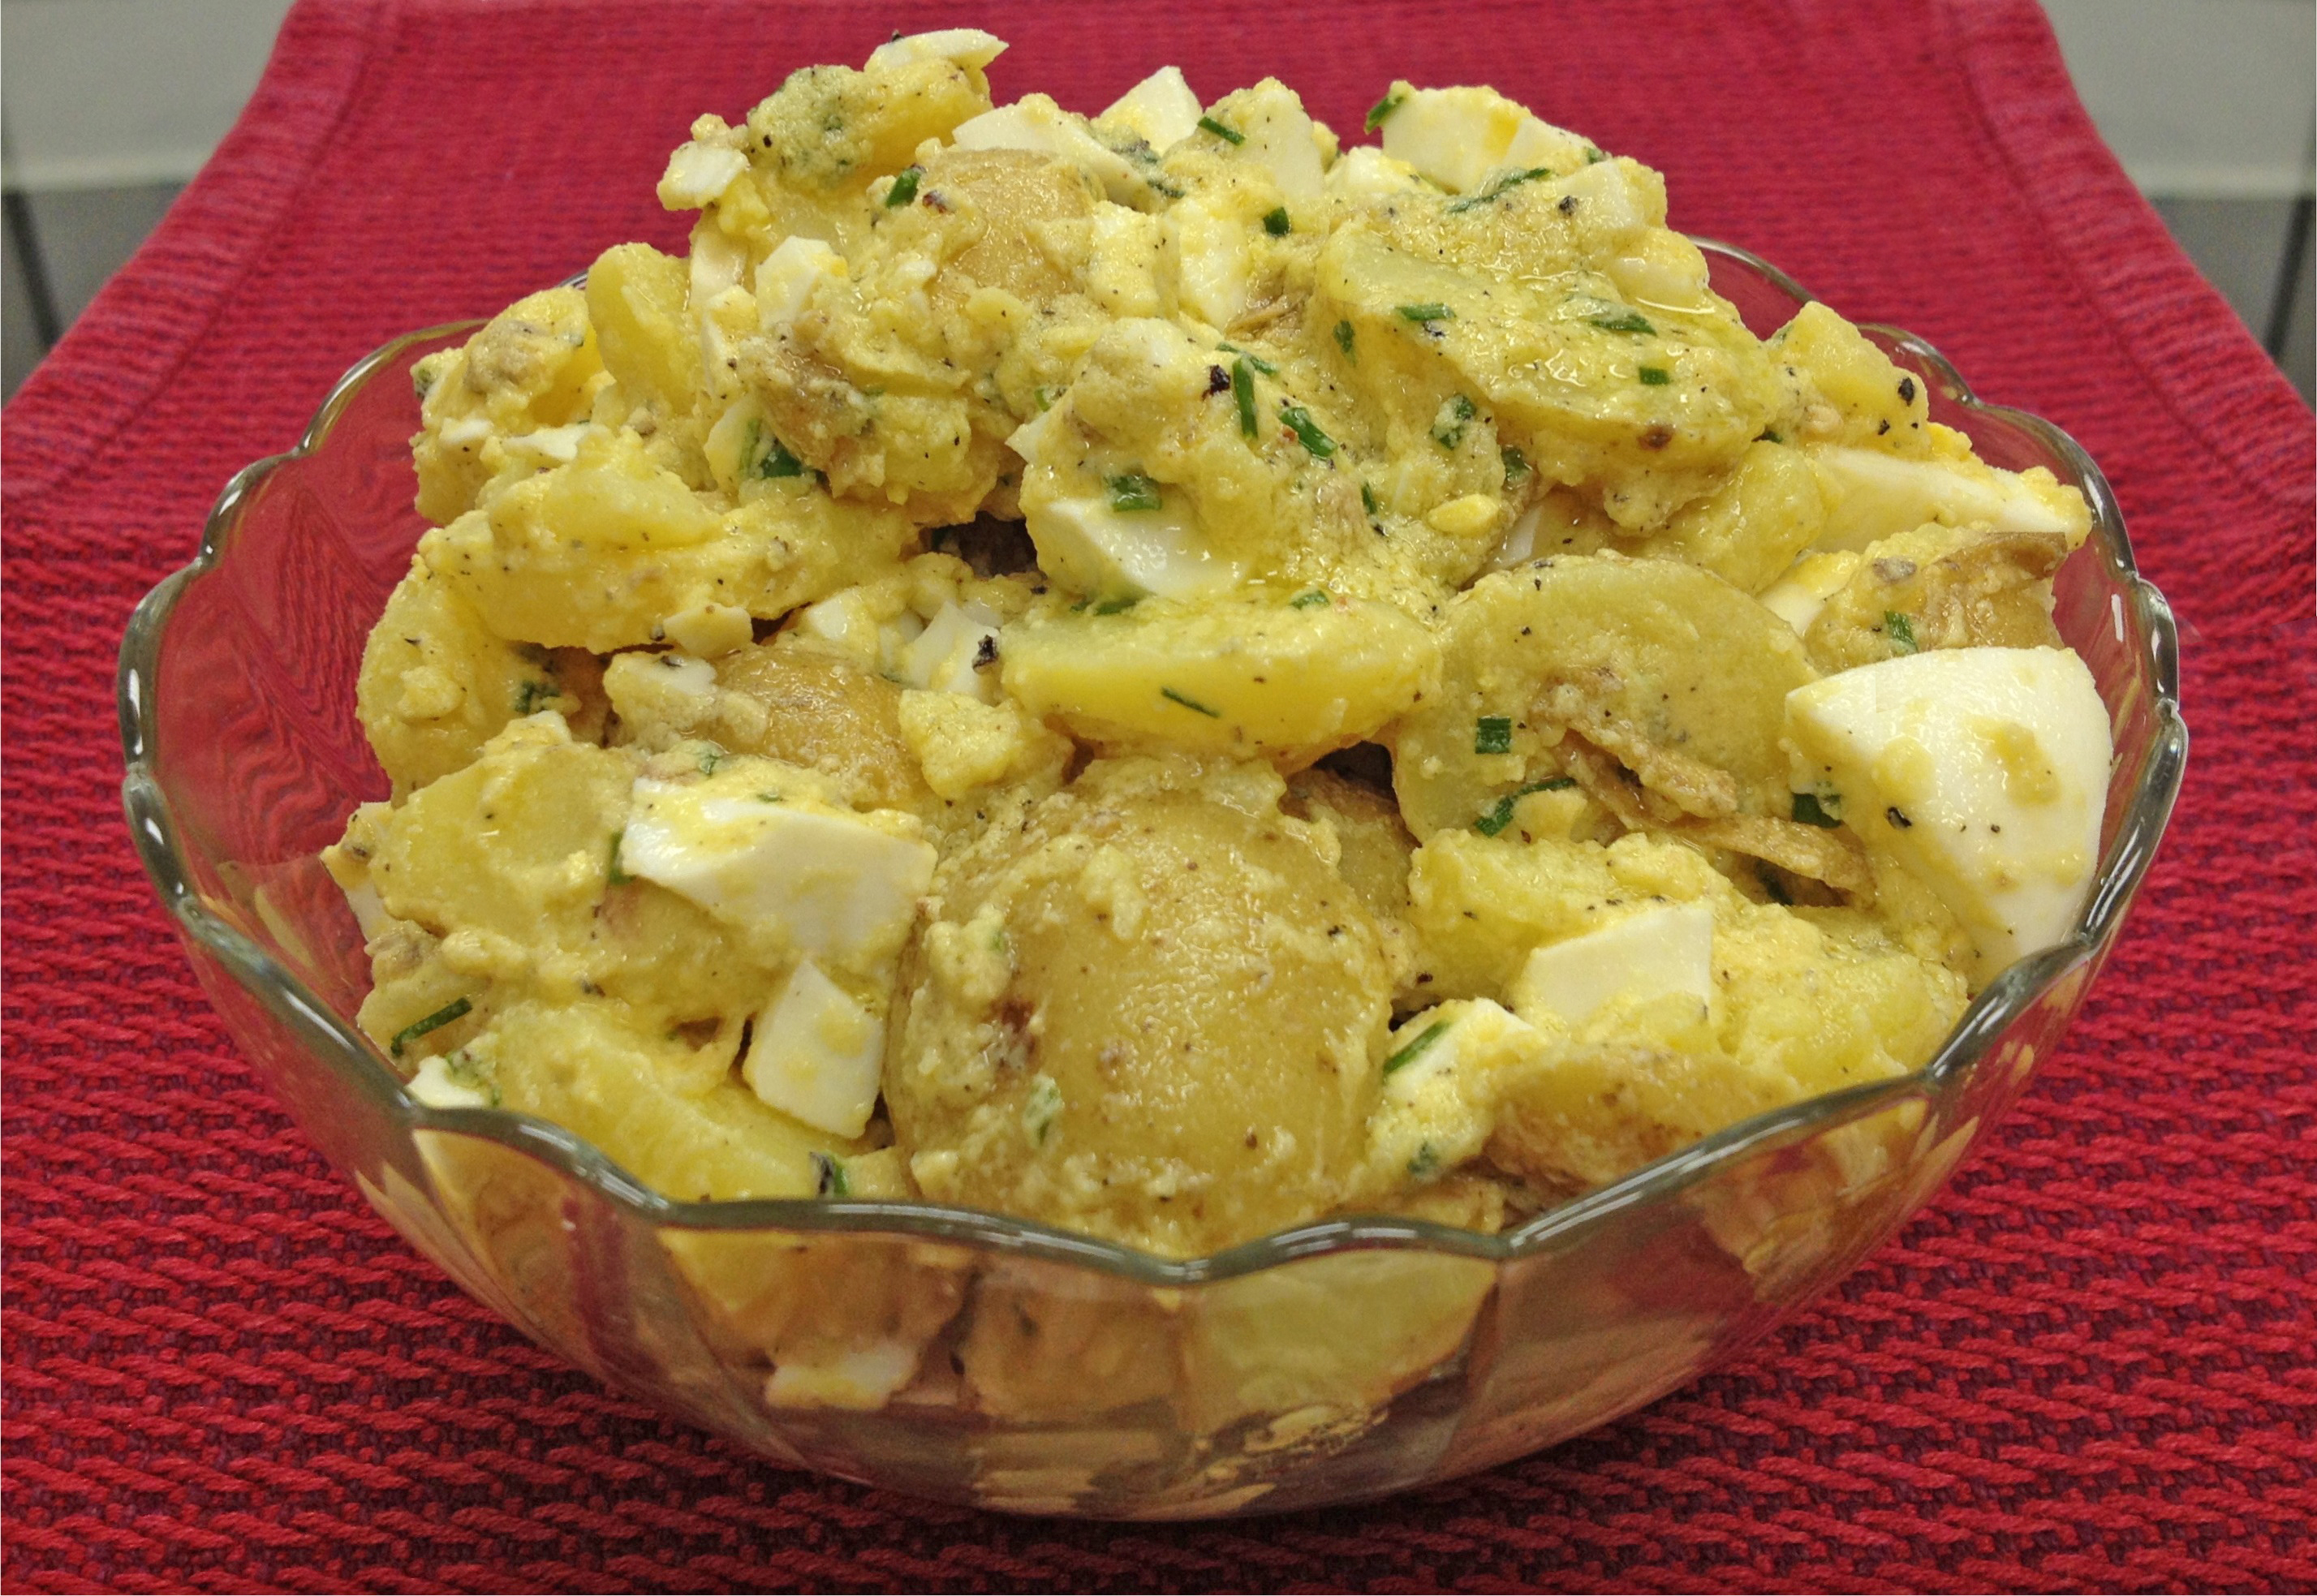 Potato salad with eggs and anchovies - perfect for a July 4th picnic.